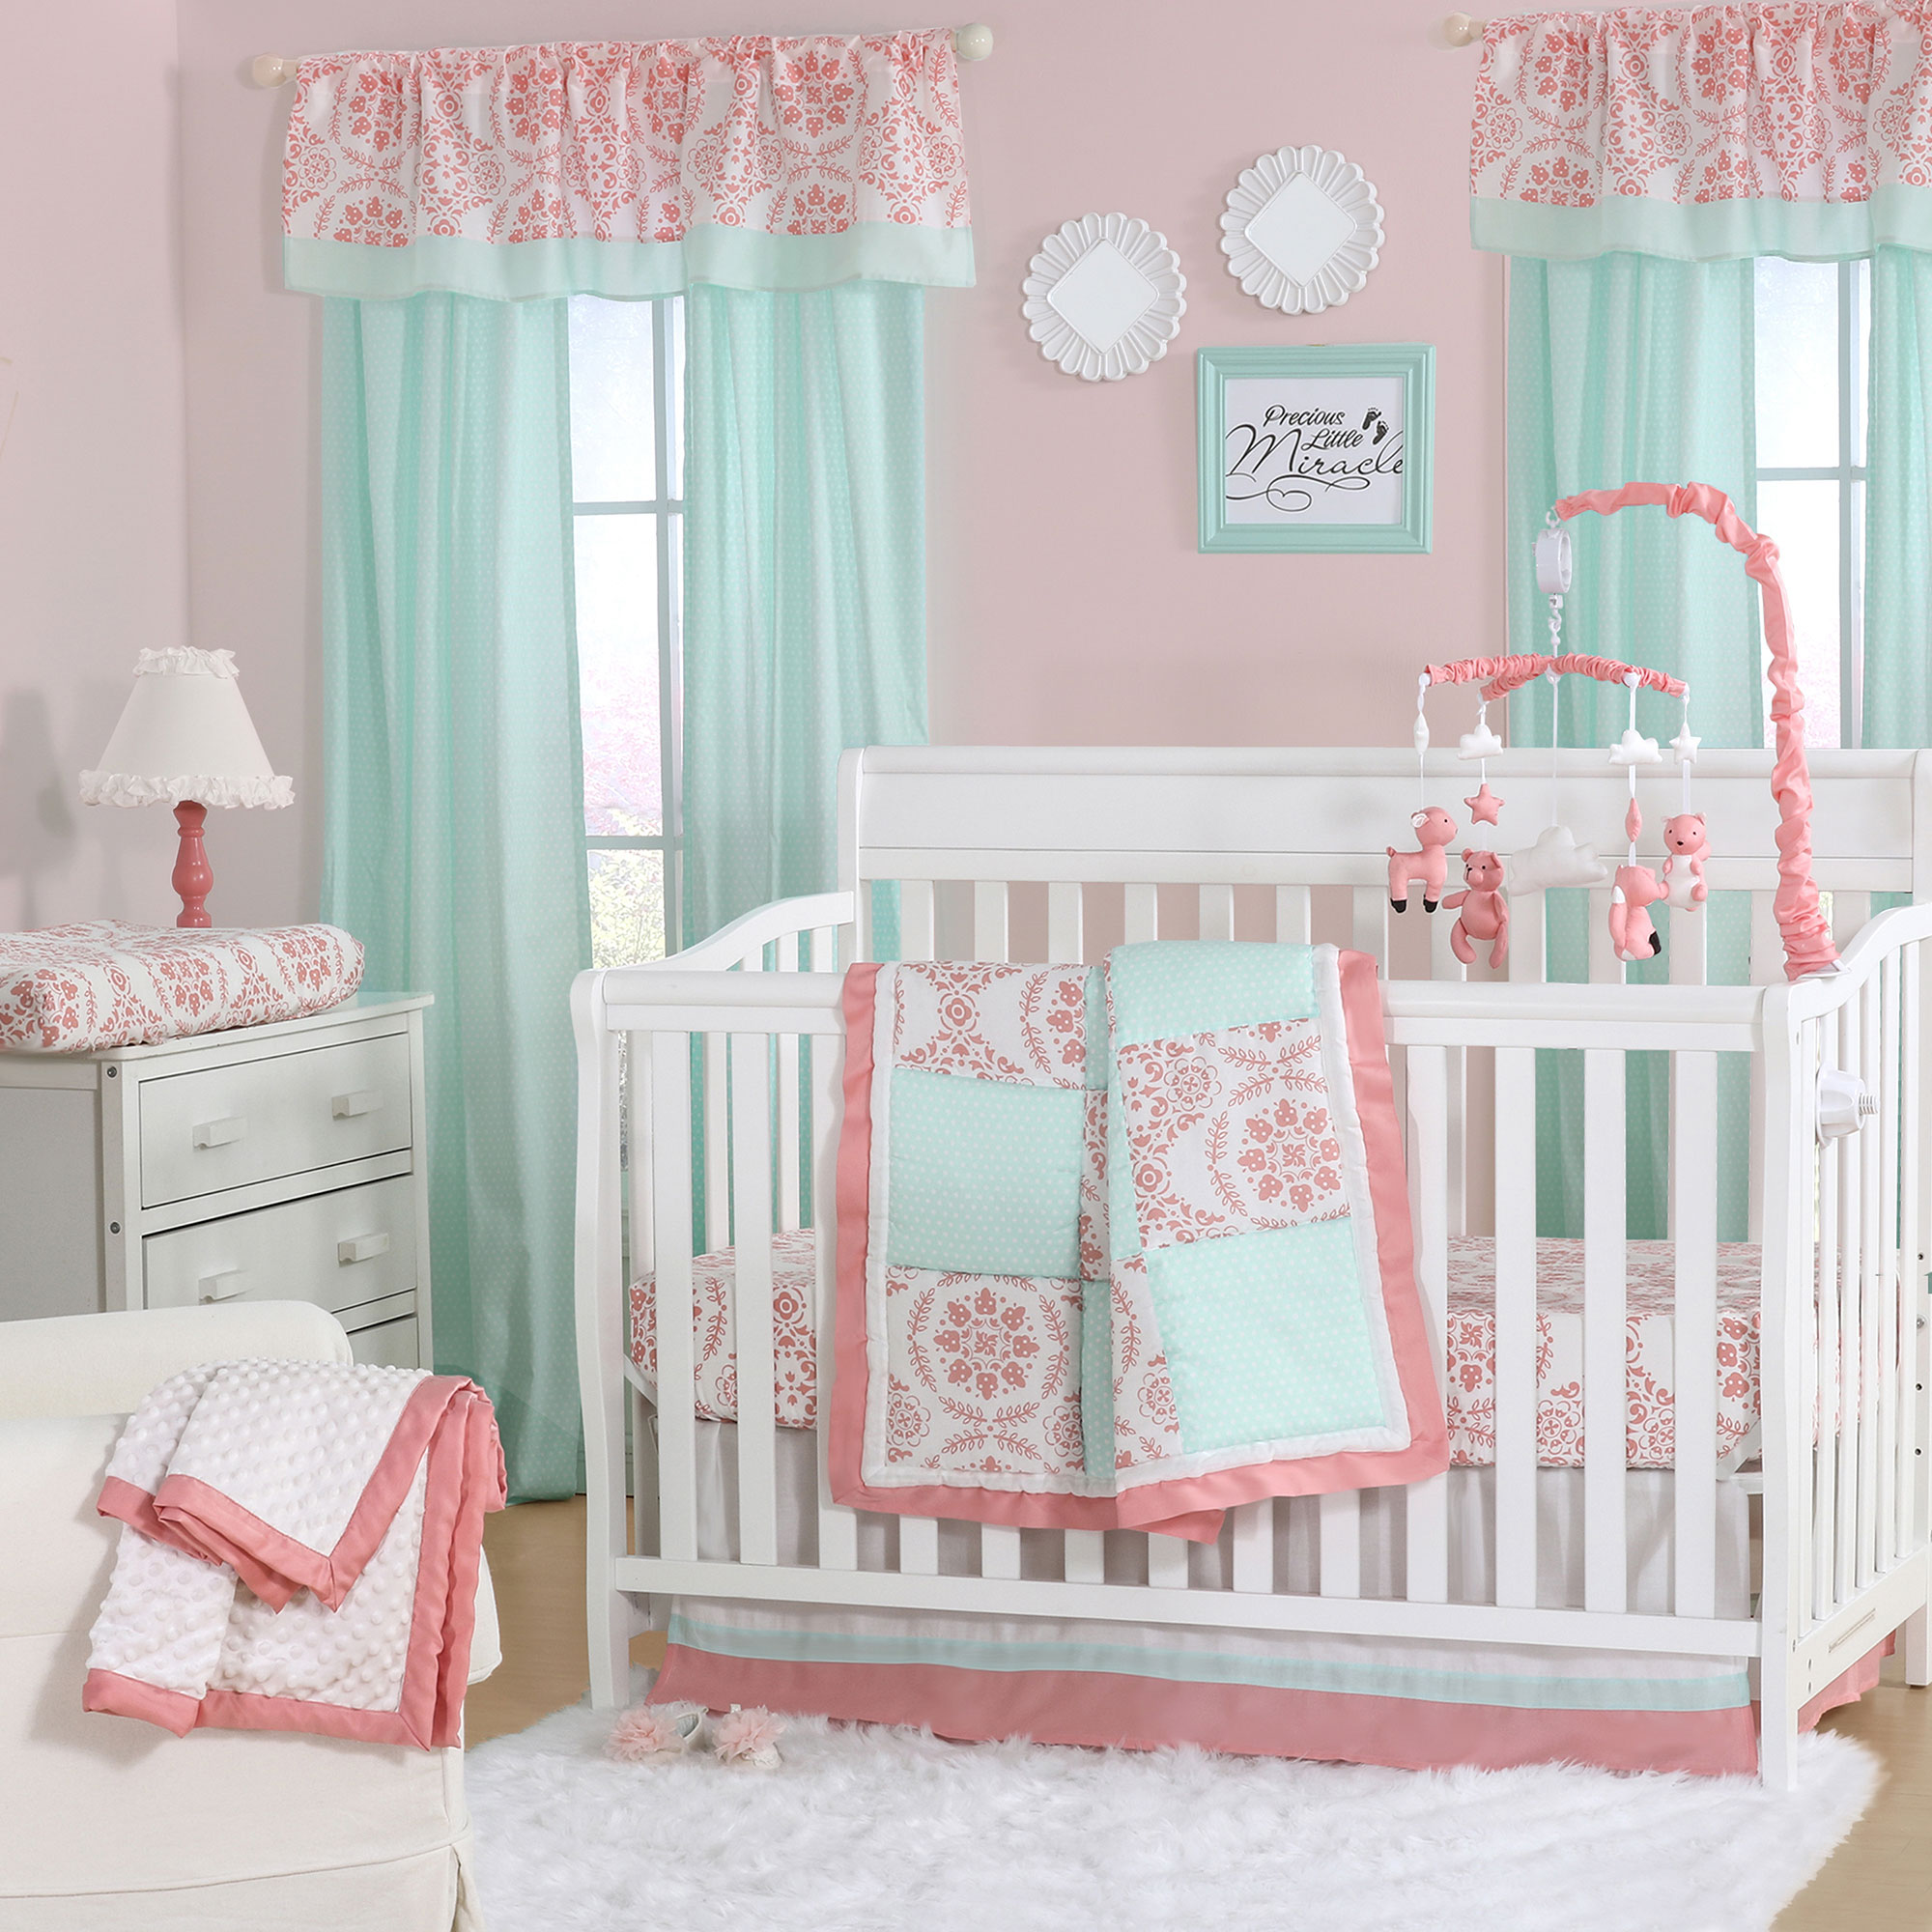 The Peanut Shell 4 Piece Baby Girl Crib Bedding Set - Coral Pink Floral Medallions and Mint Green Polka Dots Patchwork - 100% Cotton Quilt, Dust Ruffle, Fitted Sheet, and Mobile